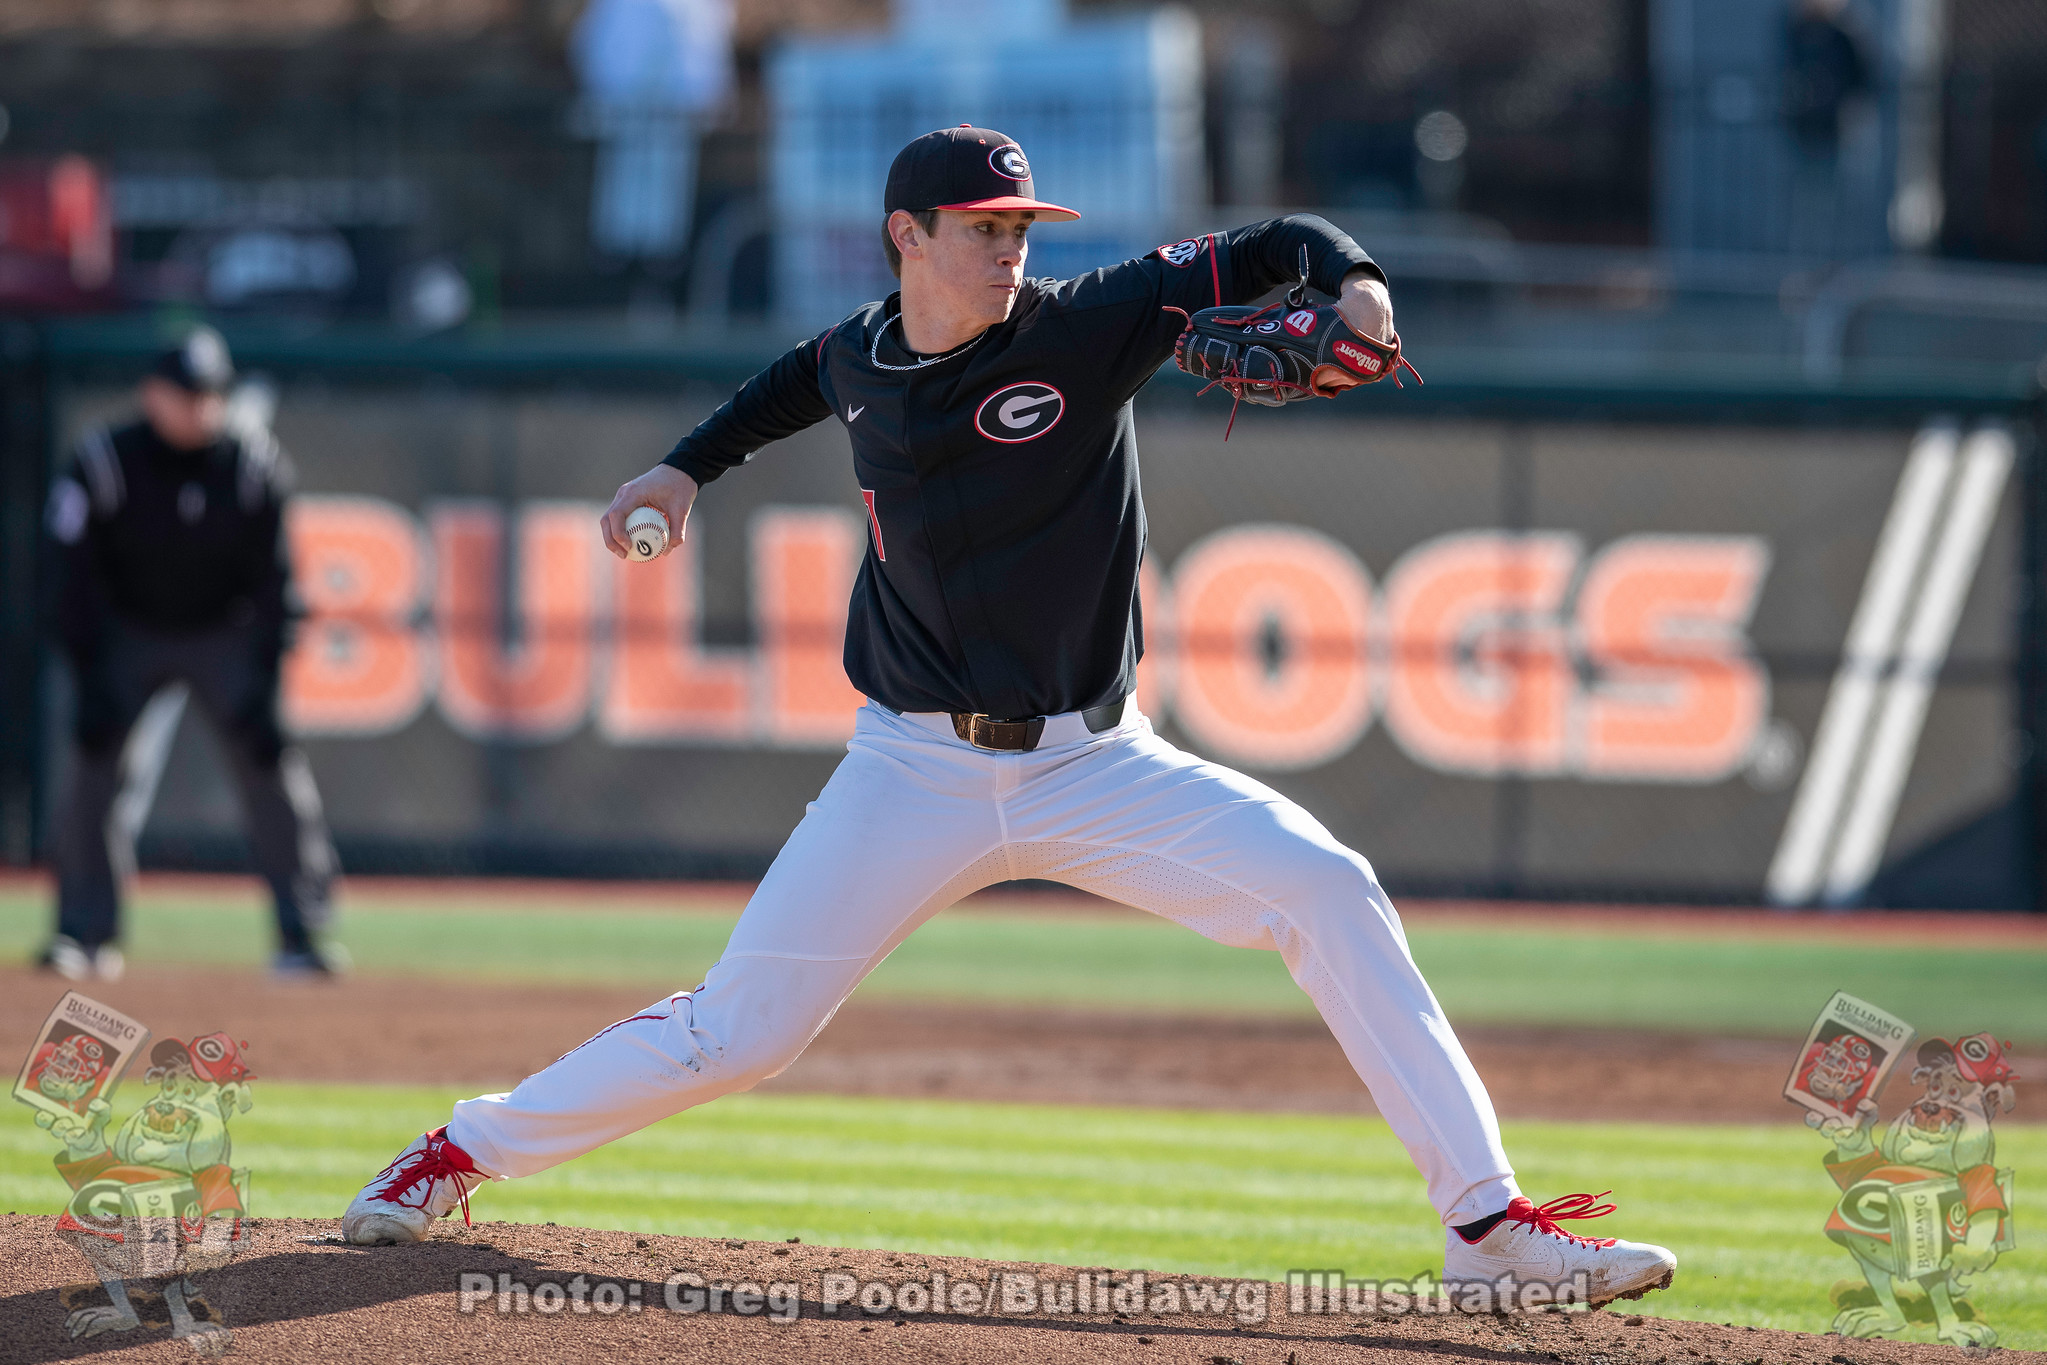 Right-hander Emerson Hancock started and pitched seven innings for Georgia in the Bulldogs 9-0 win on Friday over Santa Clara at Foley Field | February 21, 2020